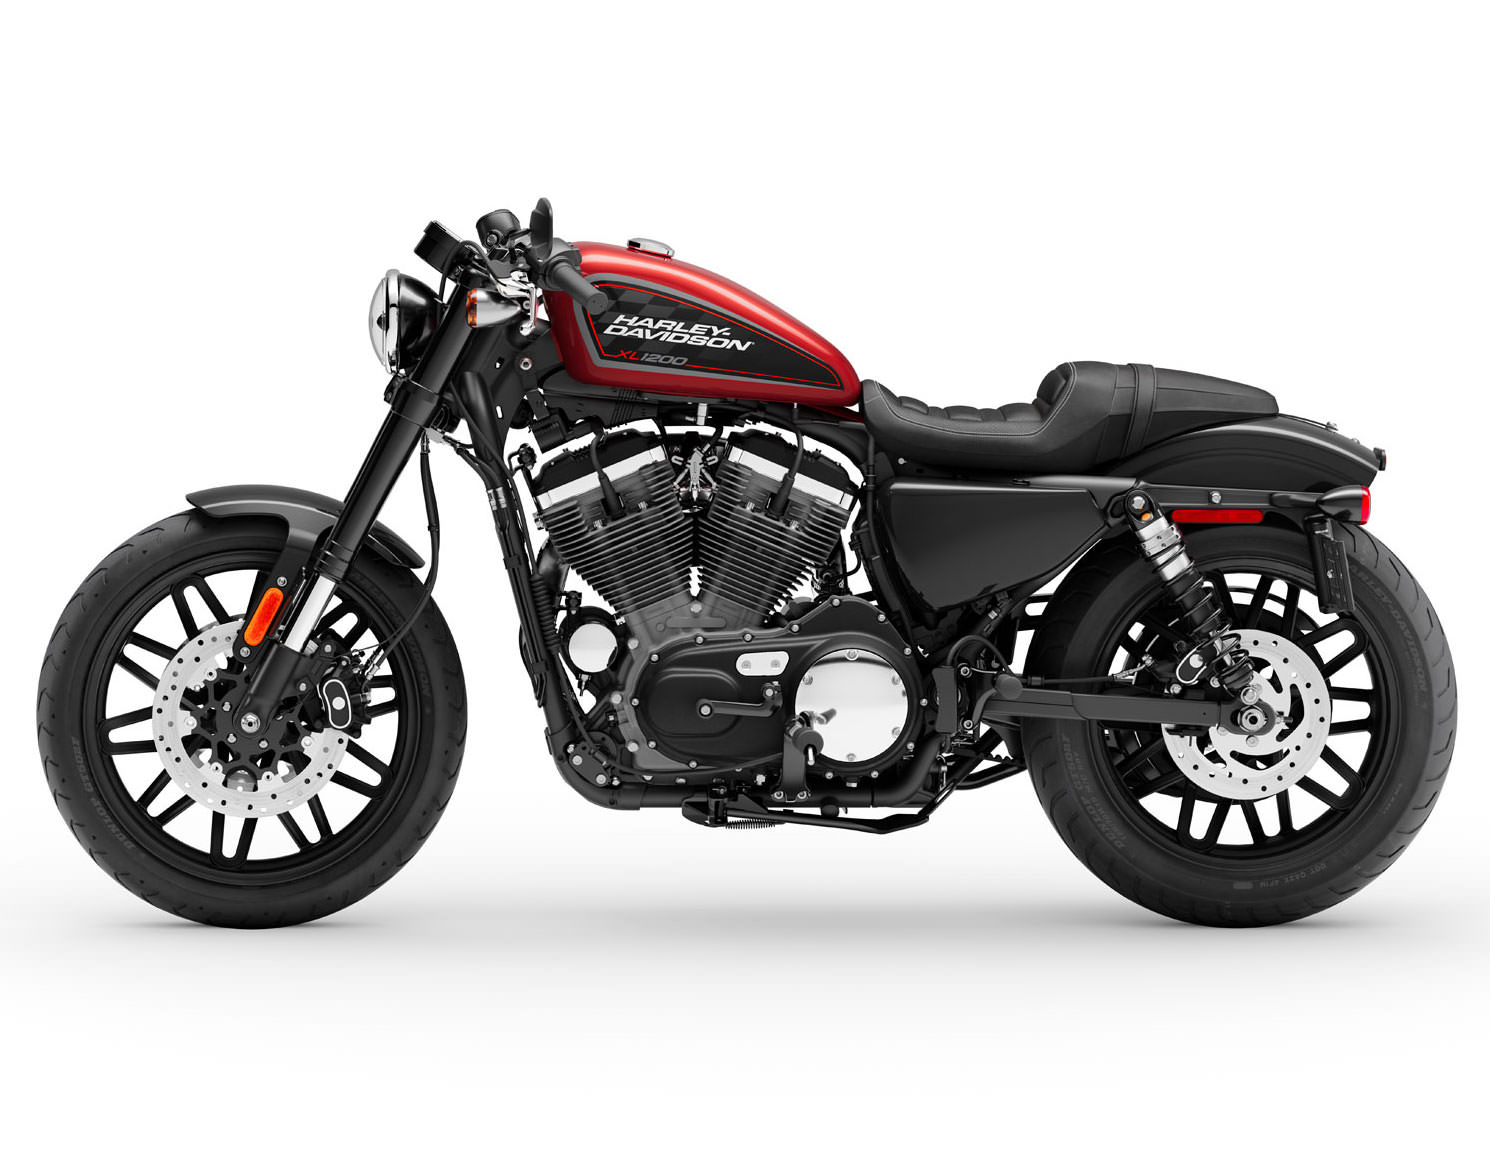 hight resolution of 08 nightster harley davidson engine diagram wiring diagram centre 08 harley davidson nightser engine diagram